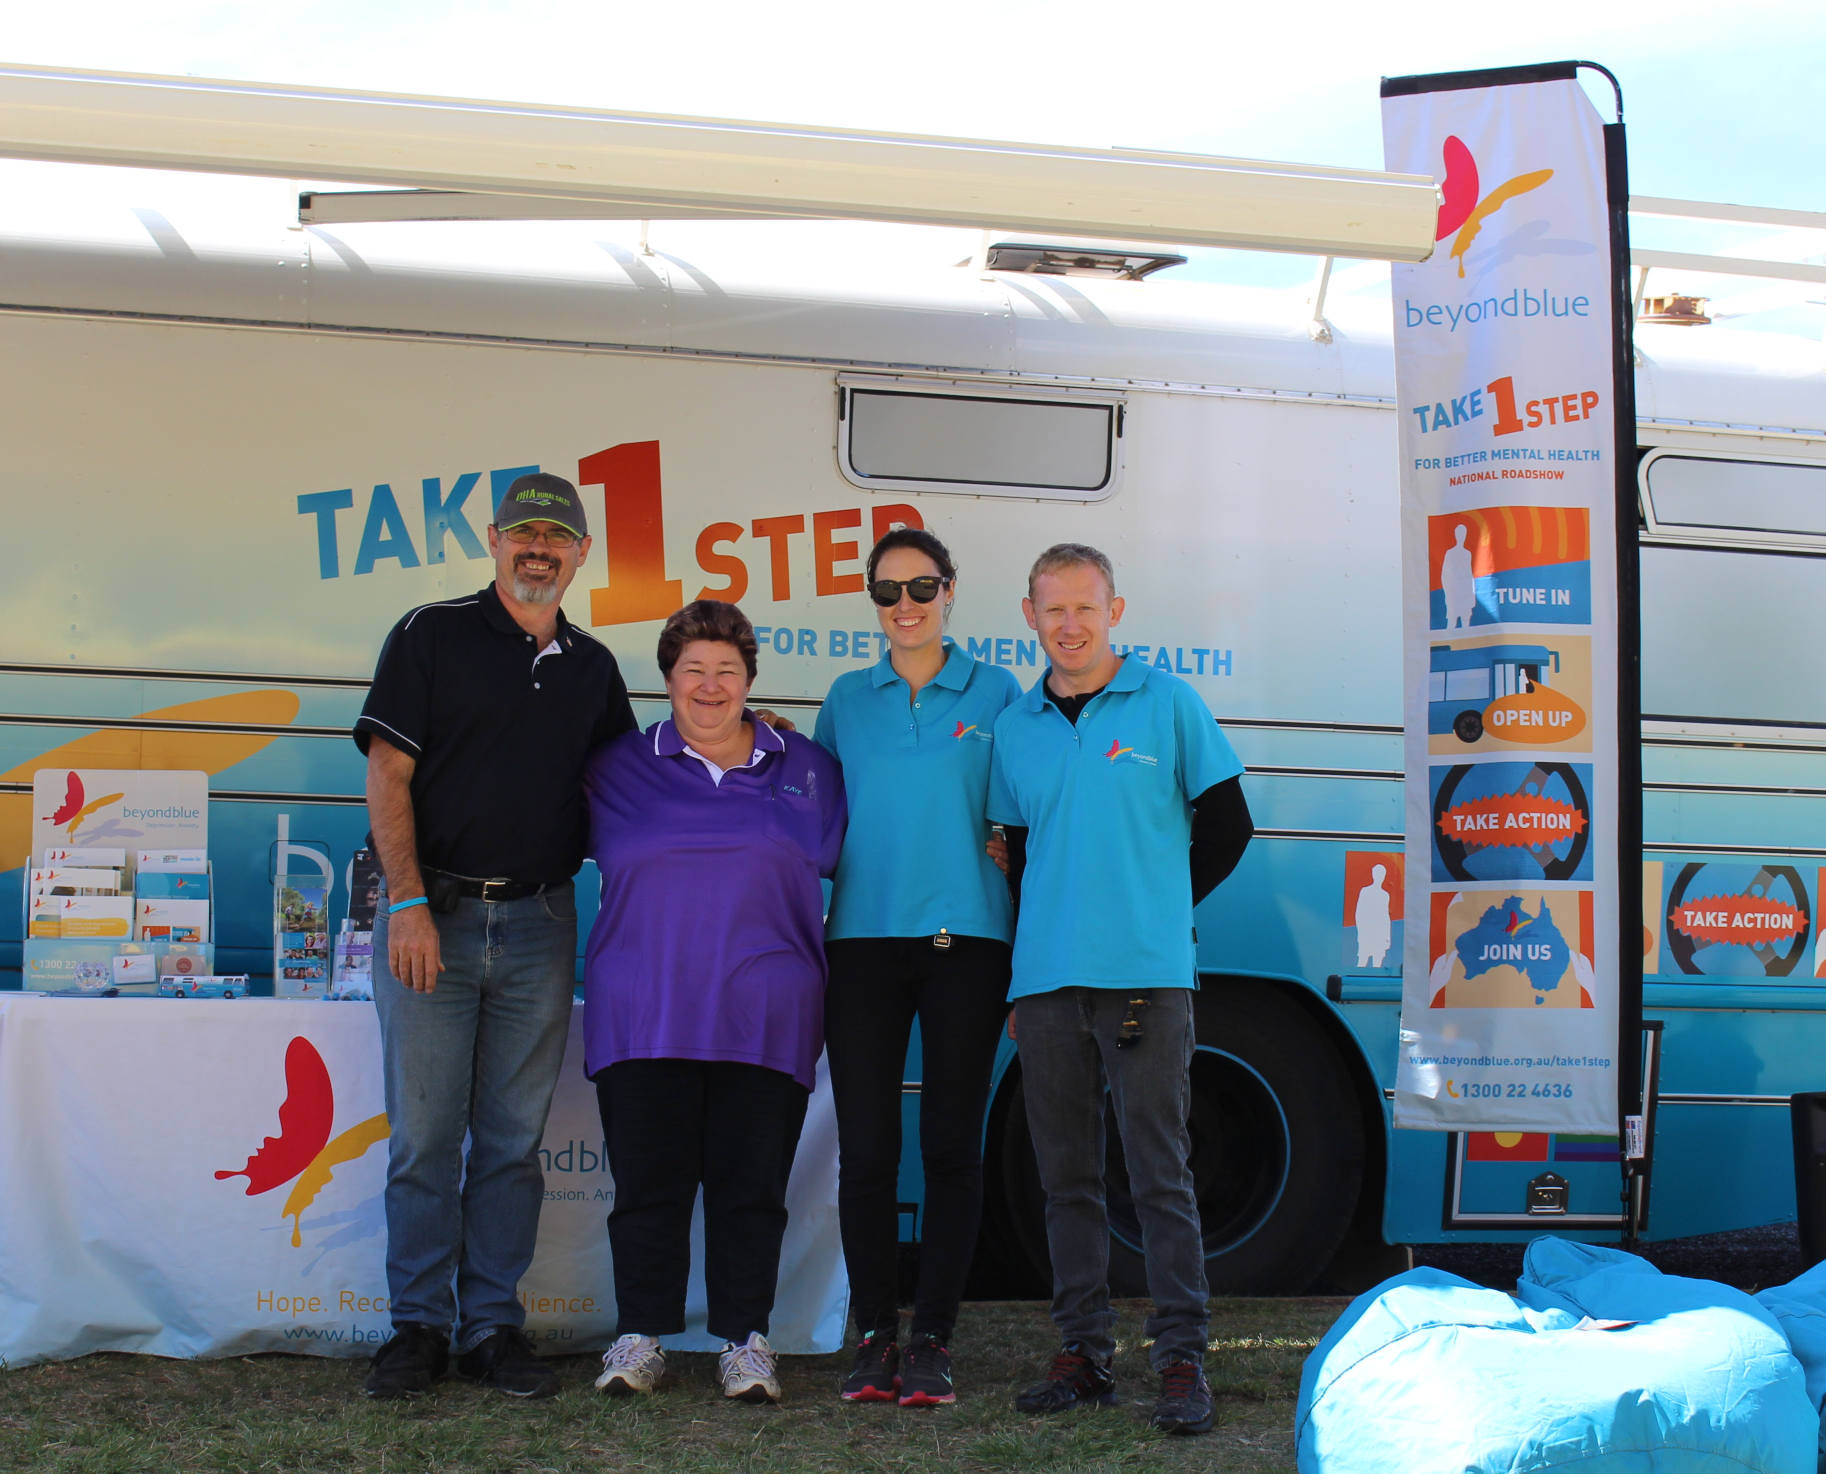 Beyond Blue speaker Eddie Sloan, Pathway2Hope's Kaye Hibbs and beyondblue's Kelly and Shaun in Kingaroy - the town that started a petition to bring the big blue bus to town: QLD.